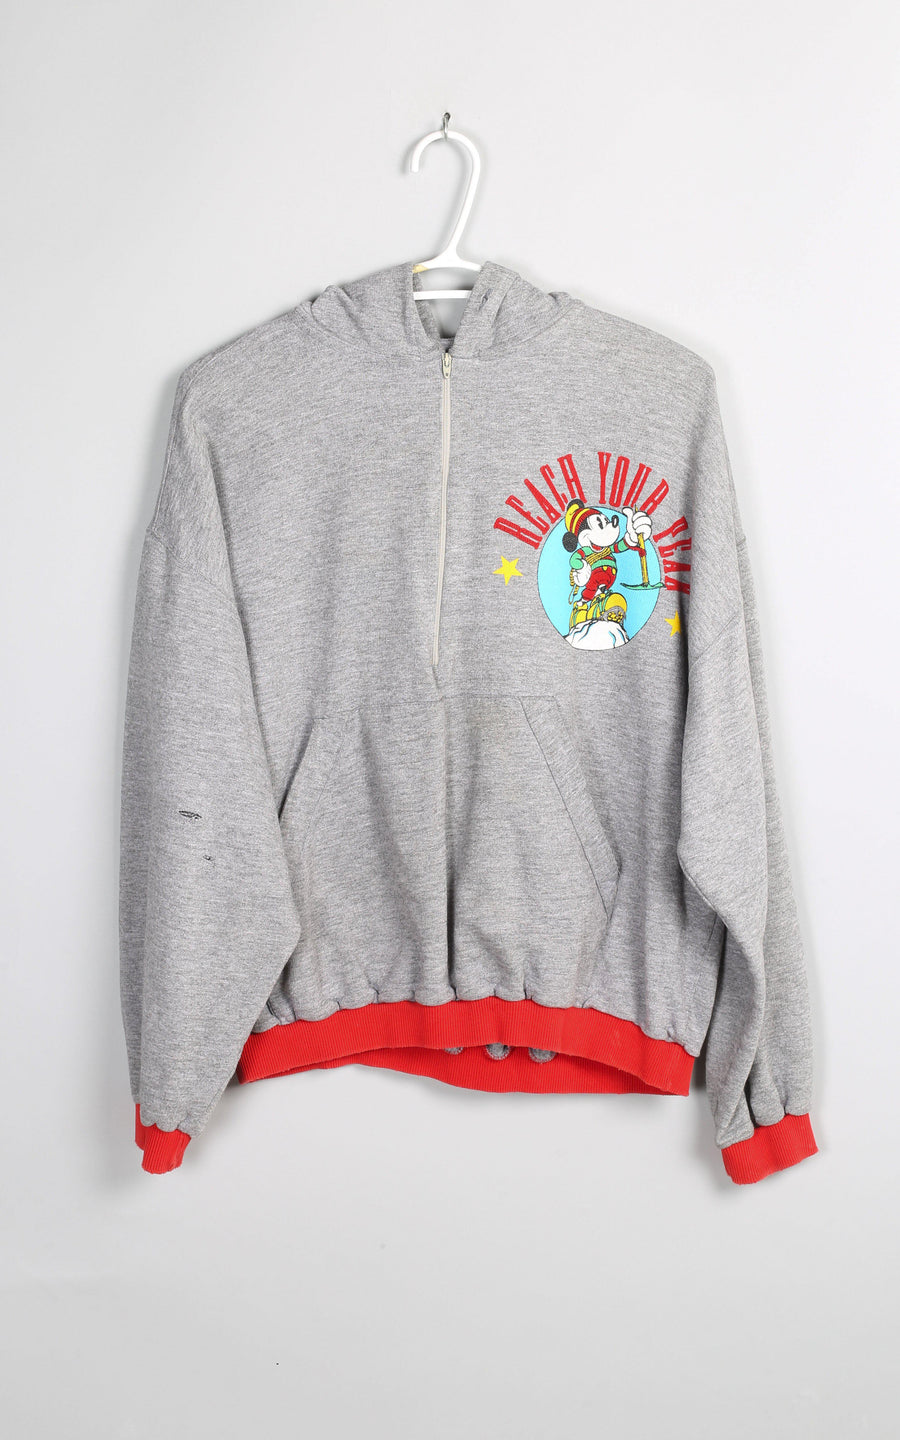 Vintage Mickey Mouse Zip Up Sweatshirt